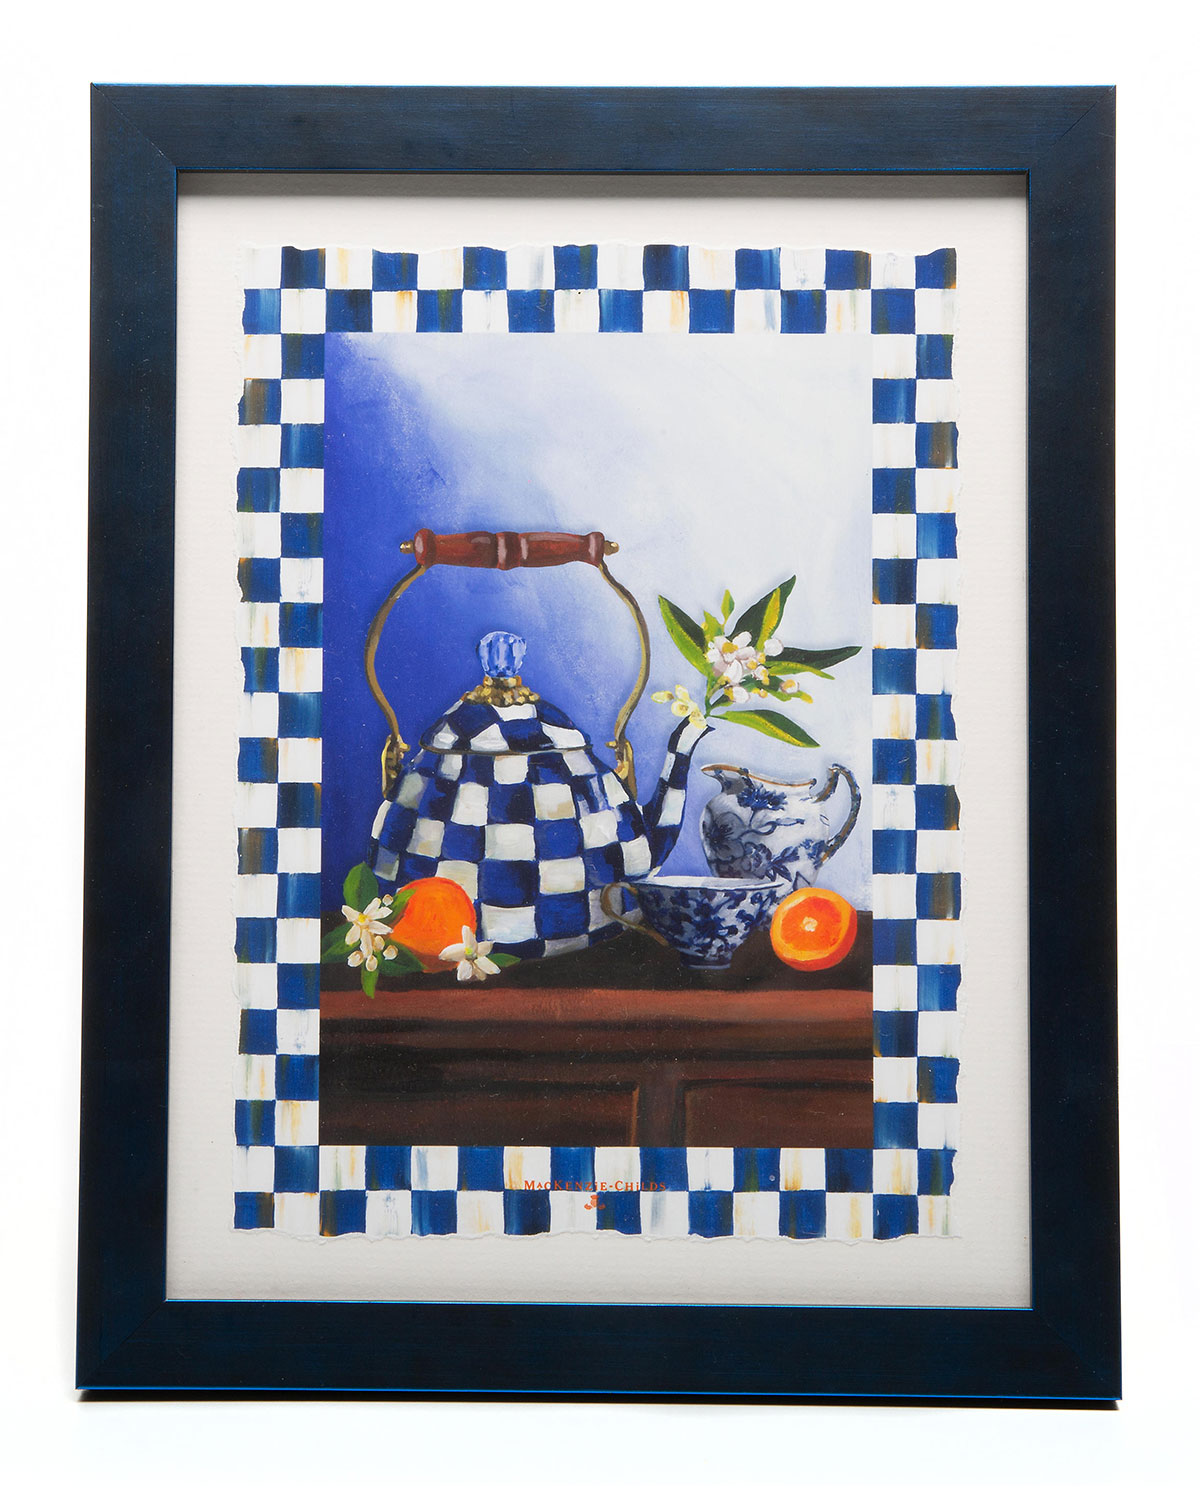 Mackenzie-Childs ROYAL CHECK TEA KETTLE STILL LIFE GICLEE PRINT IN FRAME